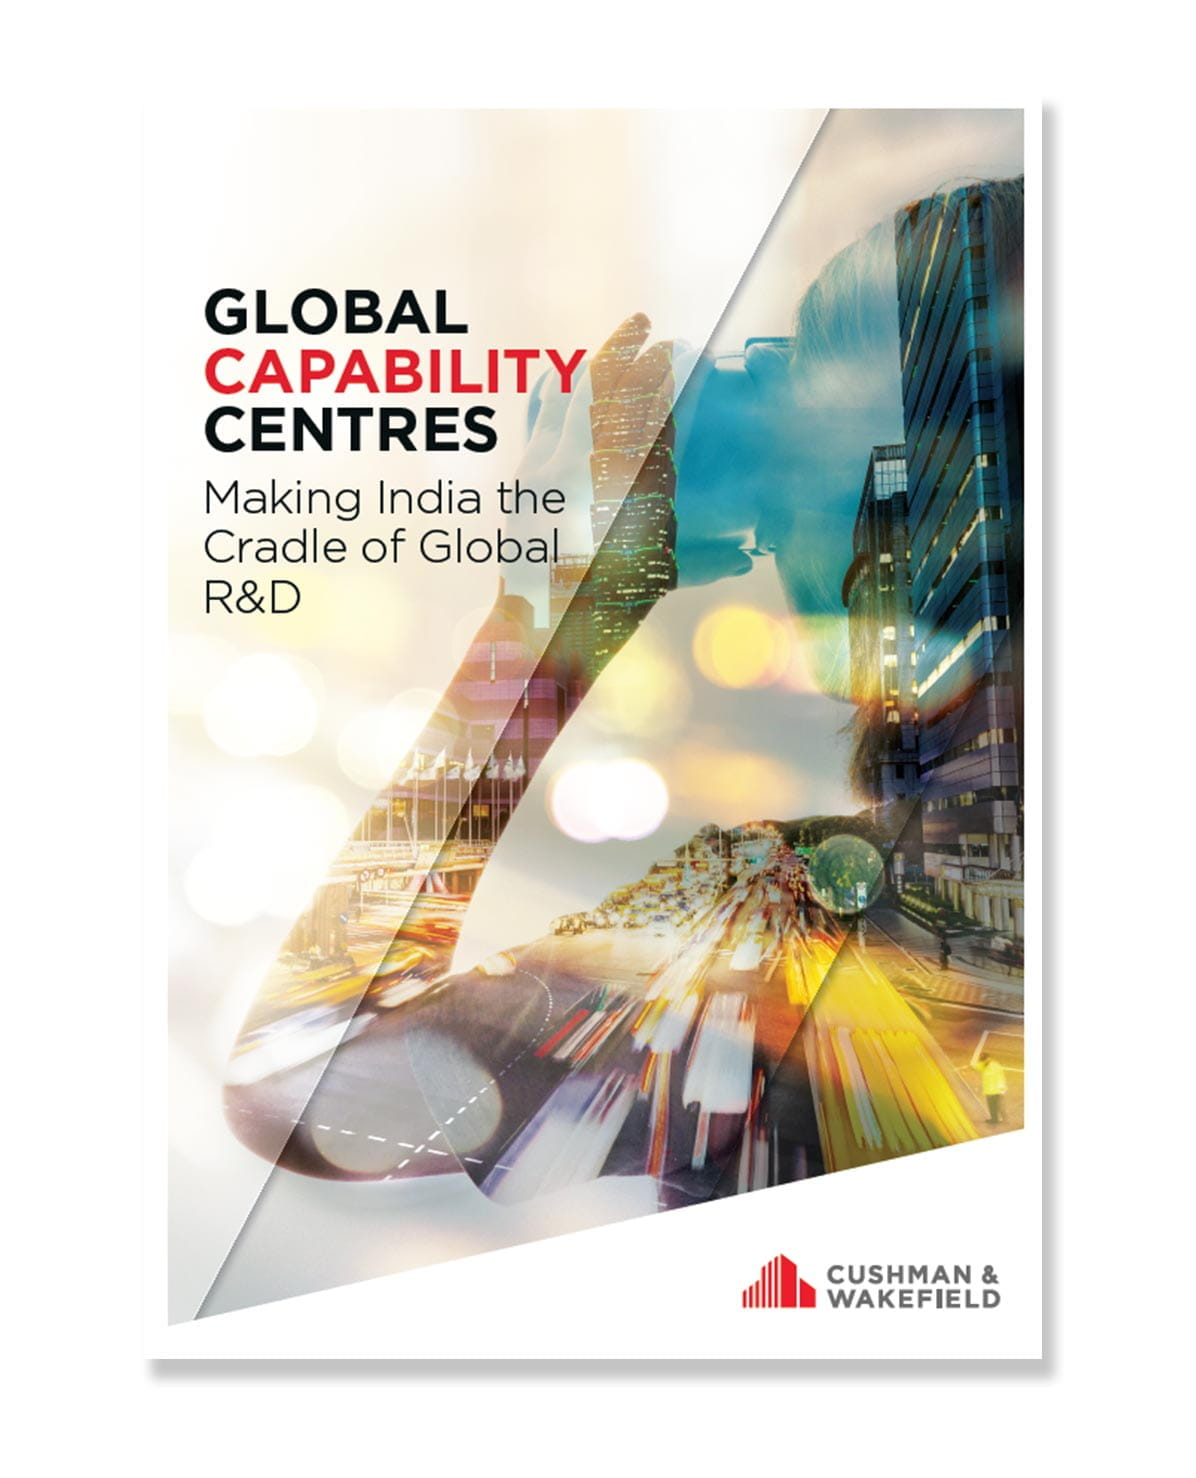 GLOBAL CAPABILITY CENTRES